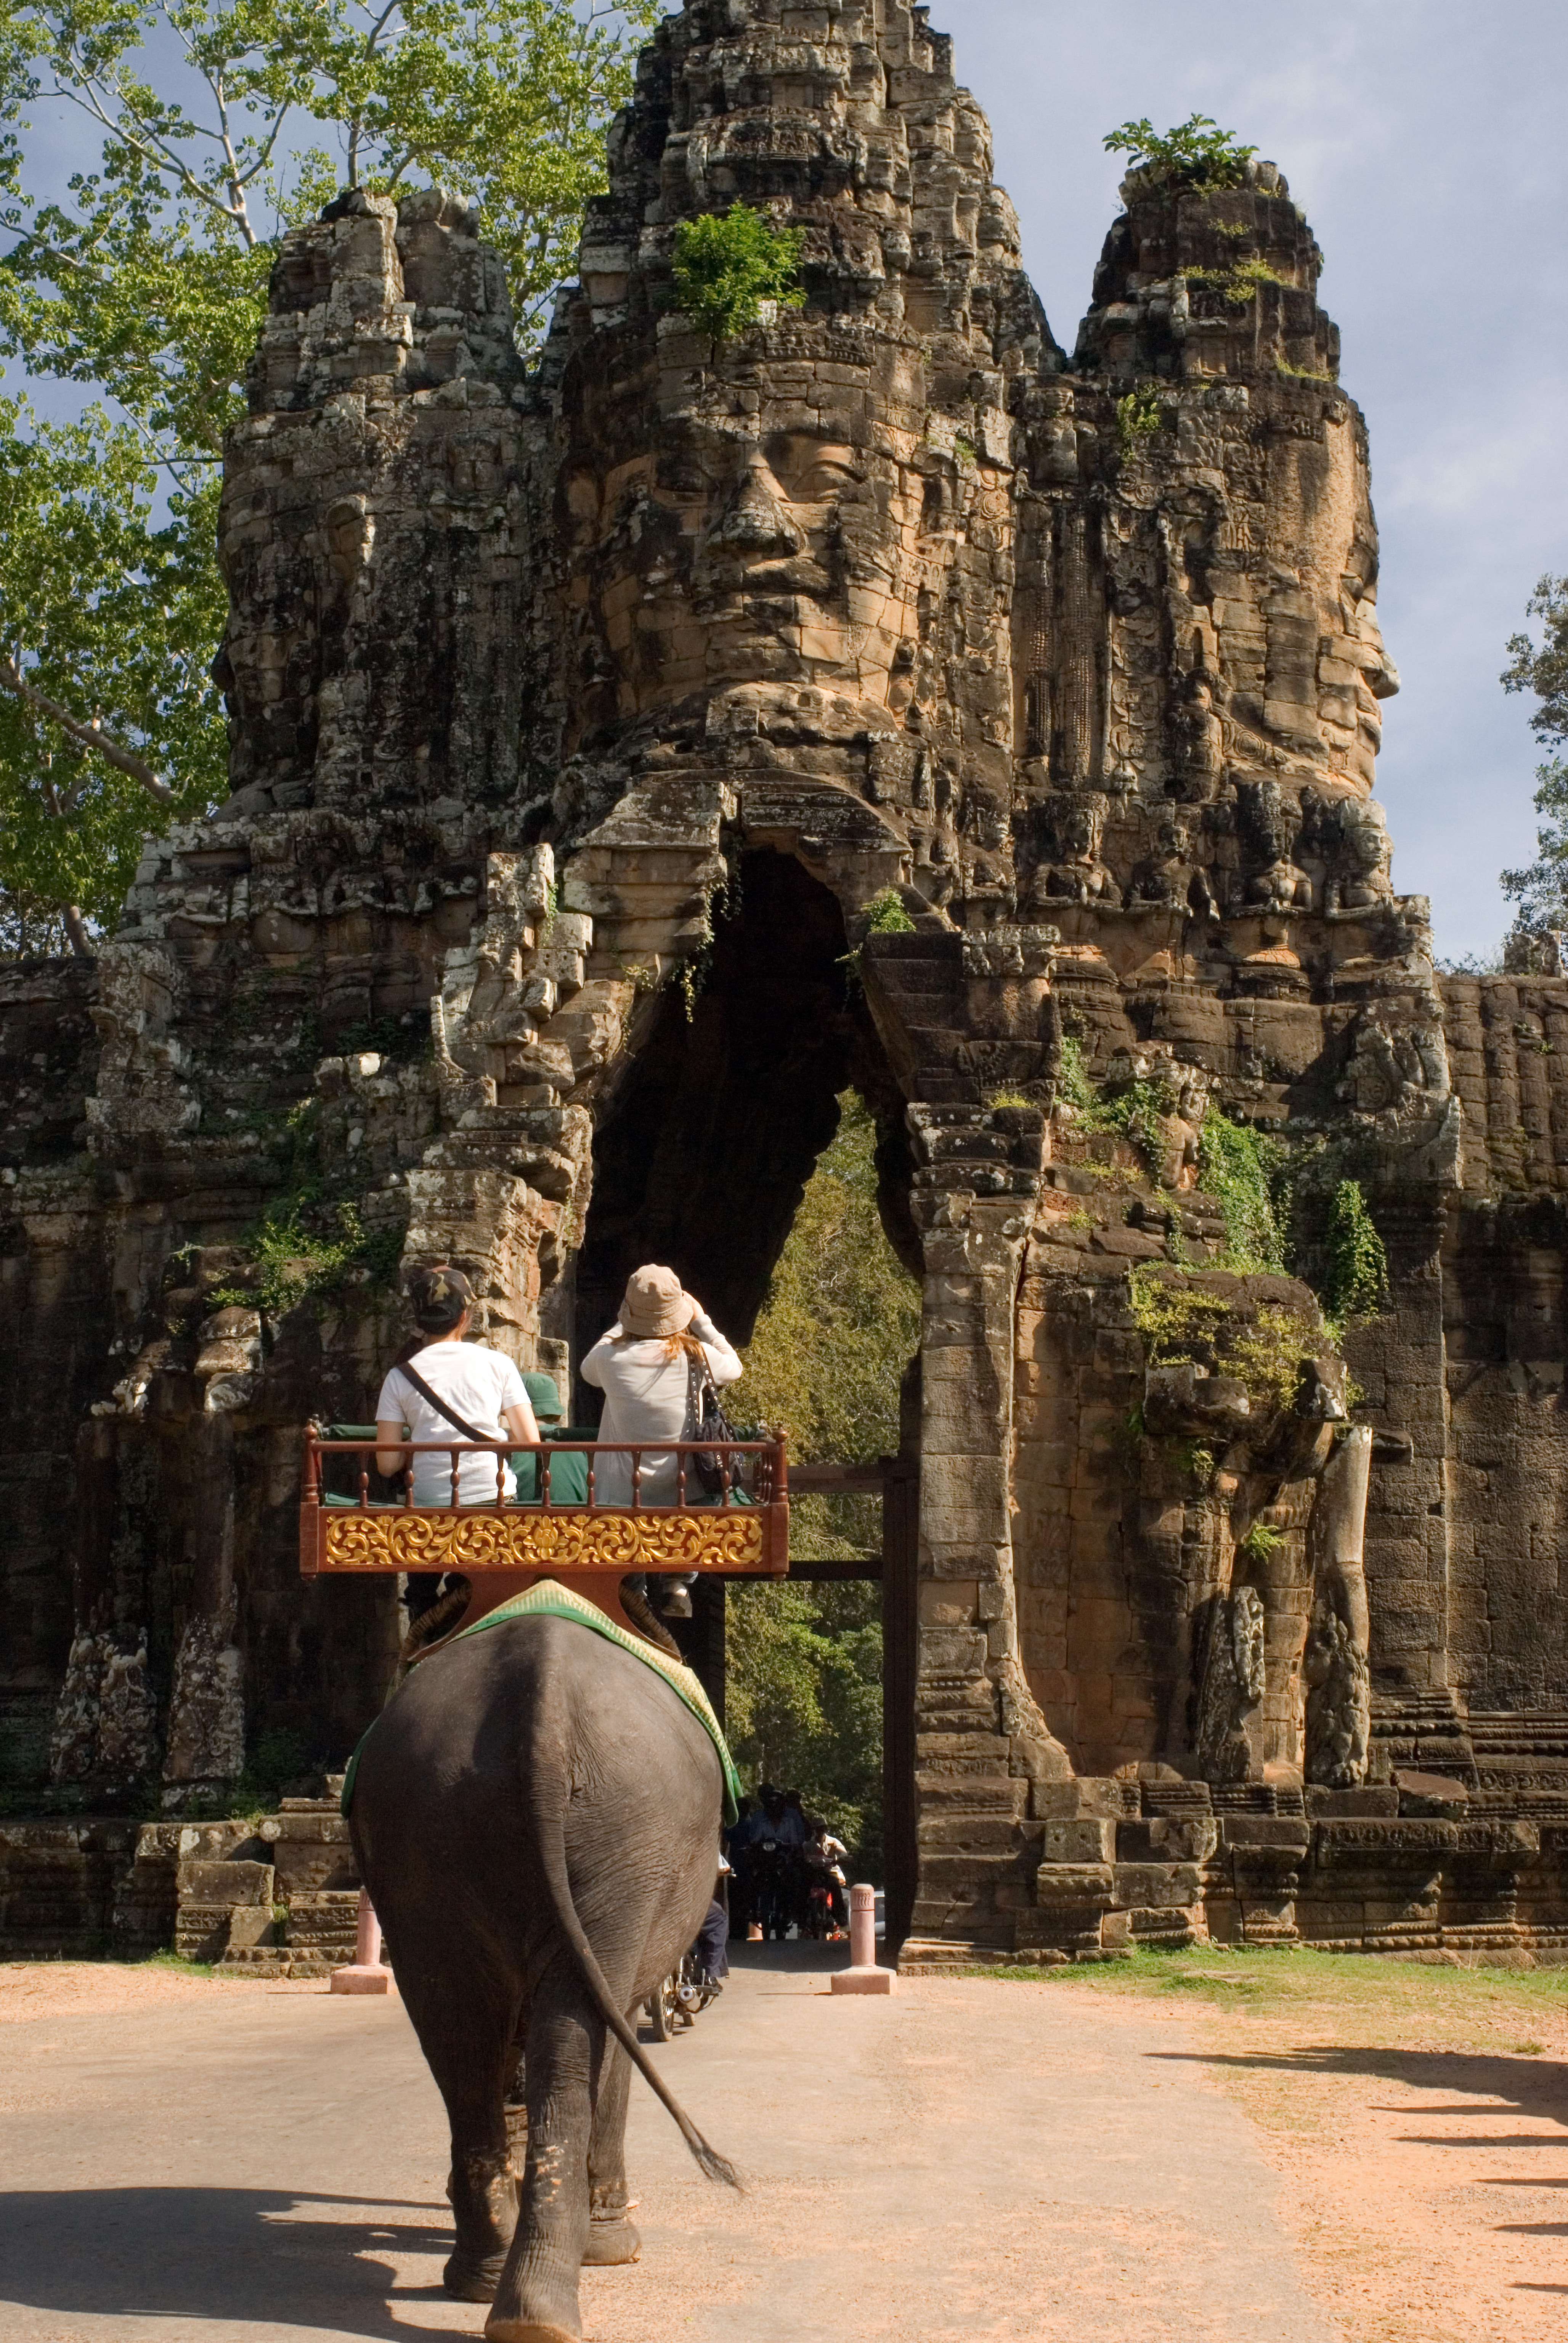 Elephant ride in Cambodia's Angkor park